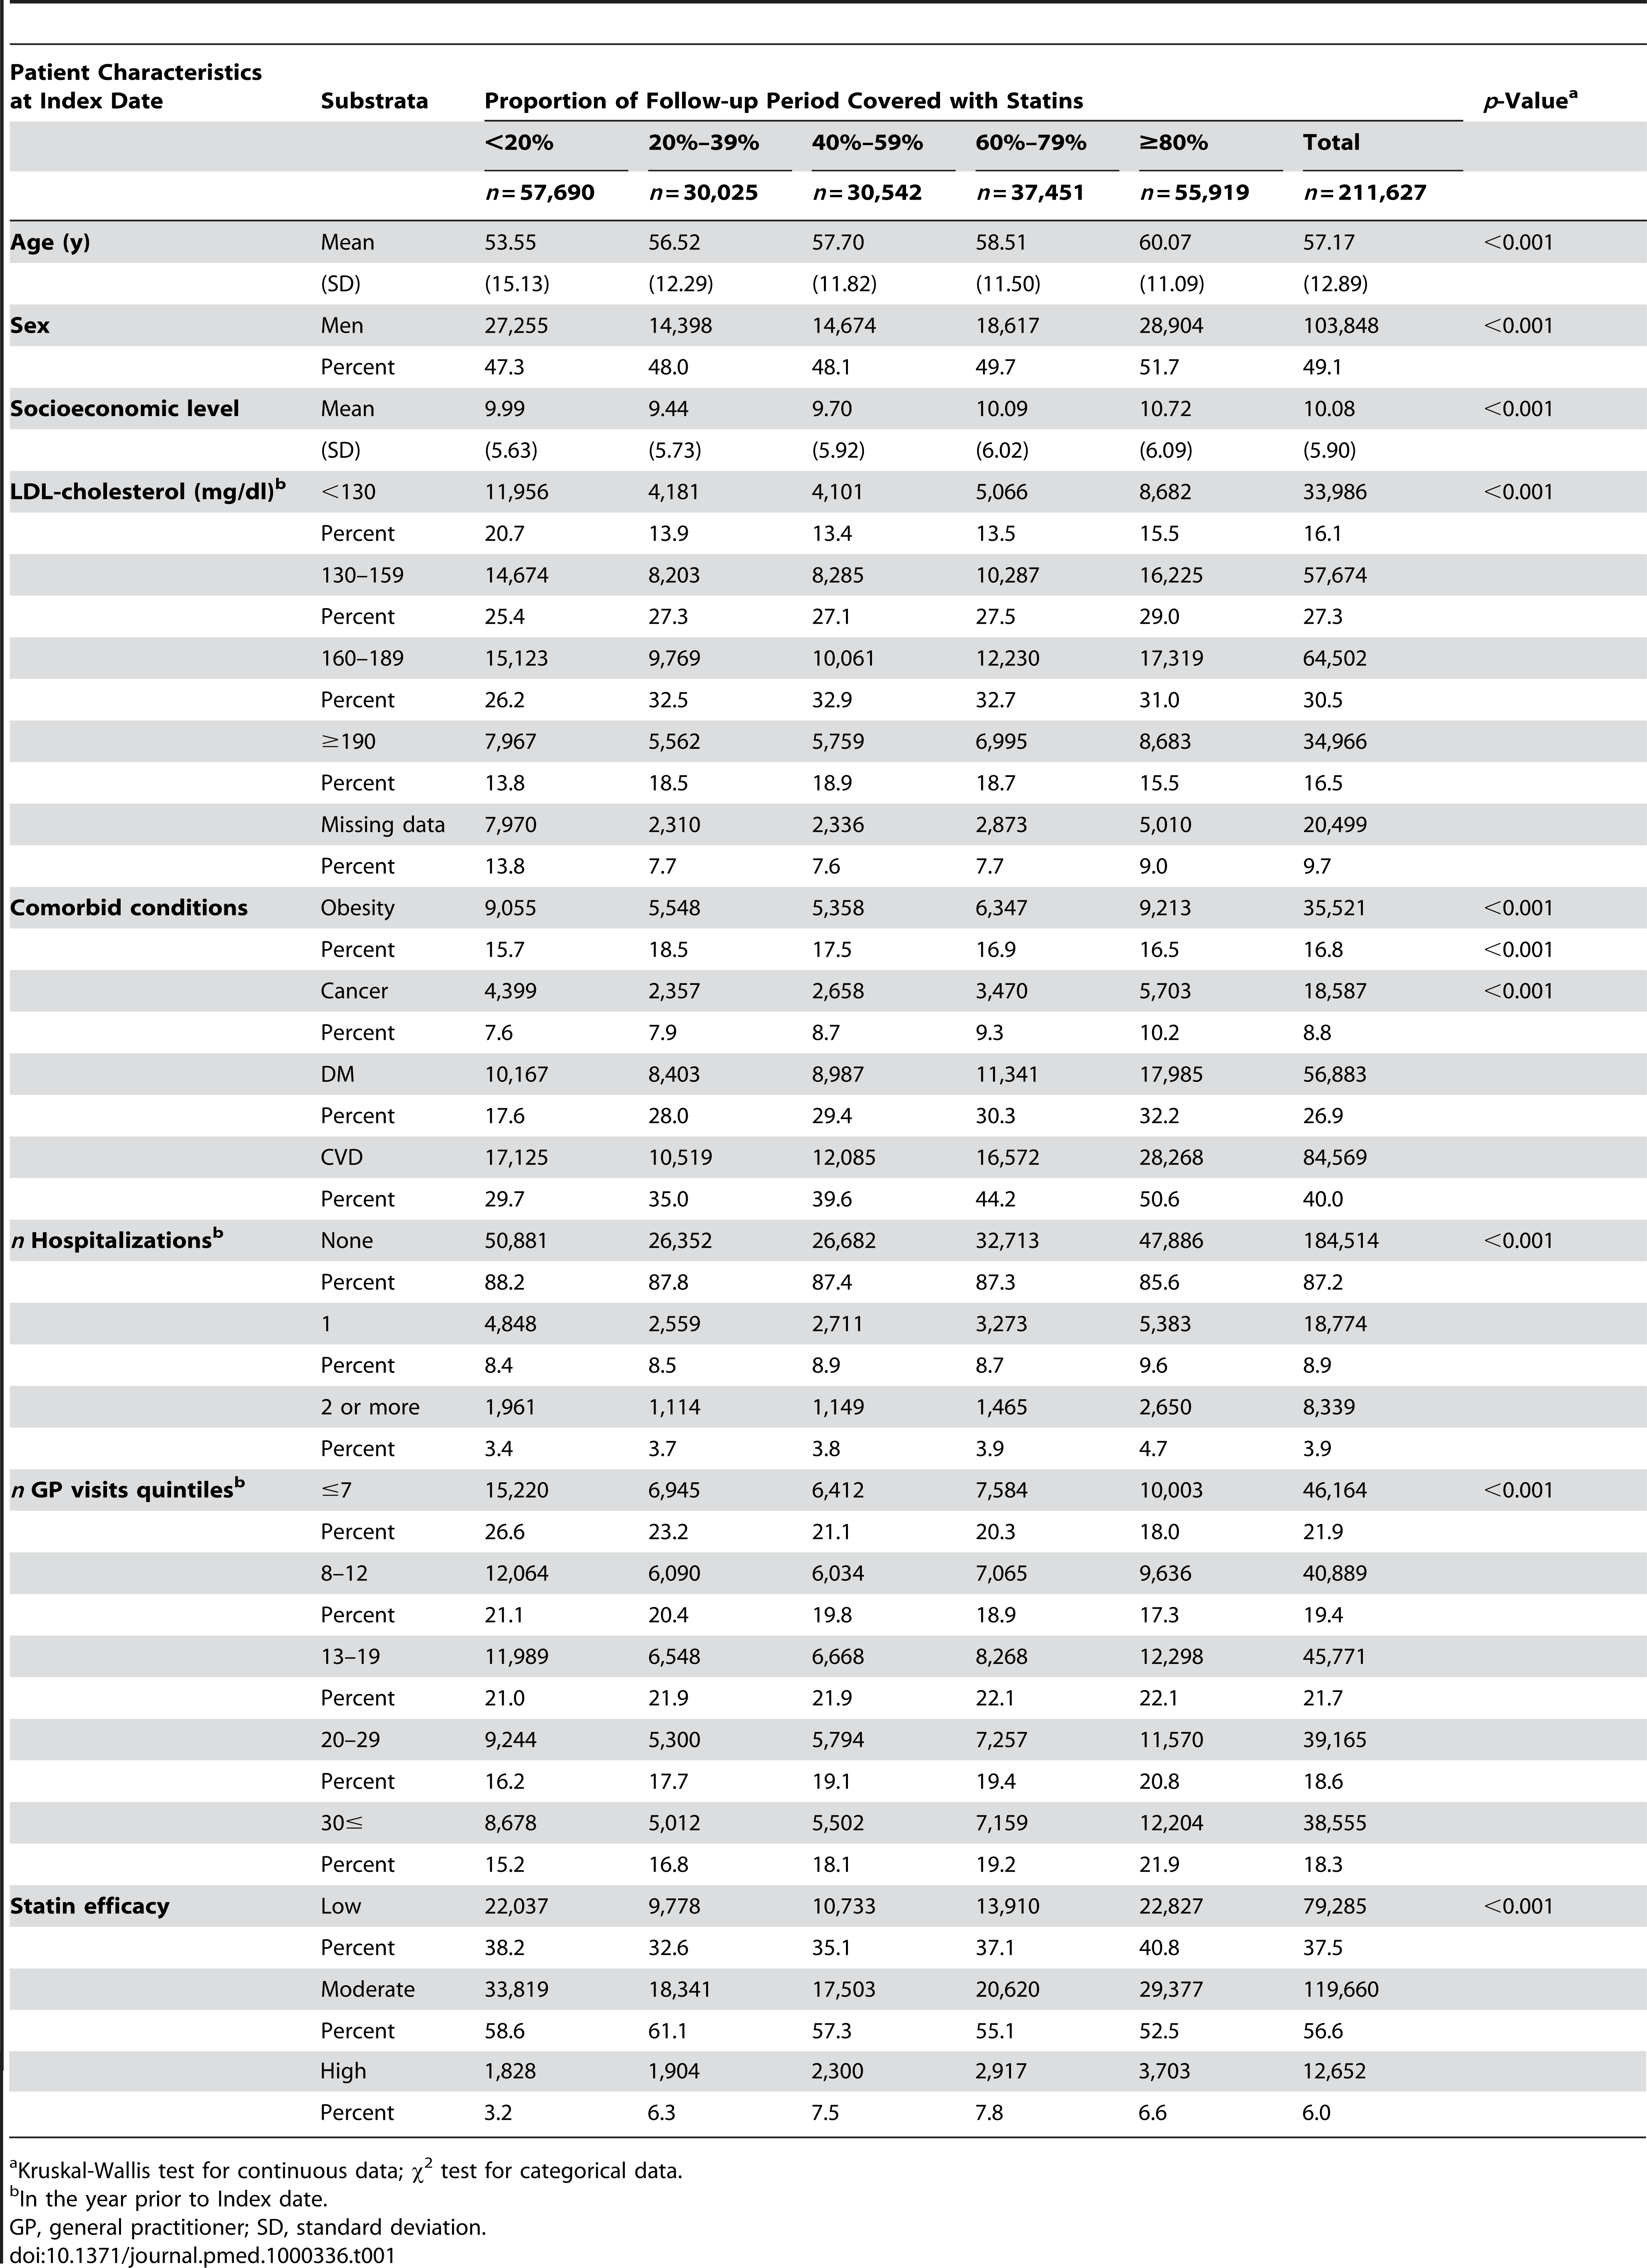 Study population characteristics, according to PDC with statins, patients eligible for the RA analysis (<i>n</i> = 211,627).